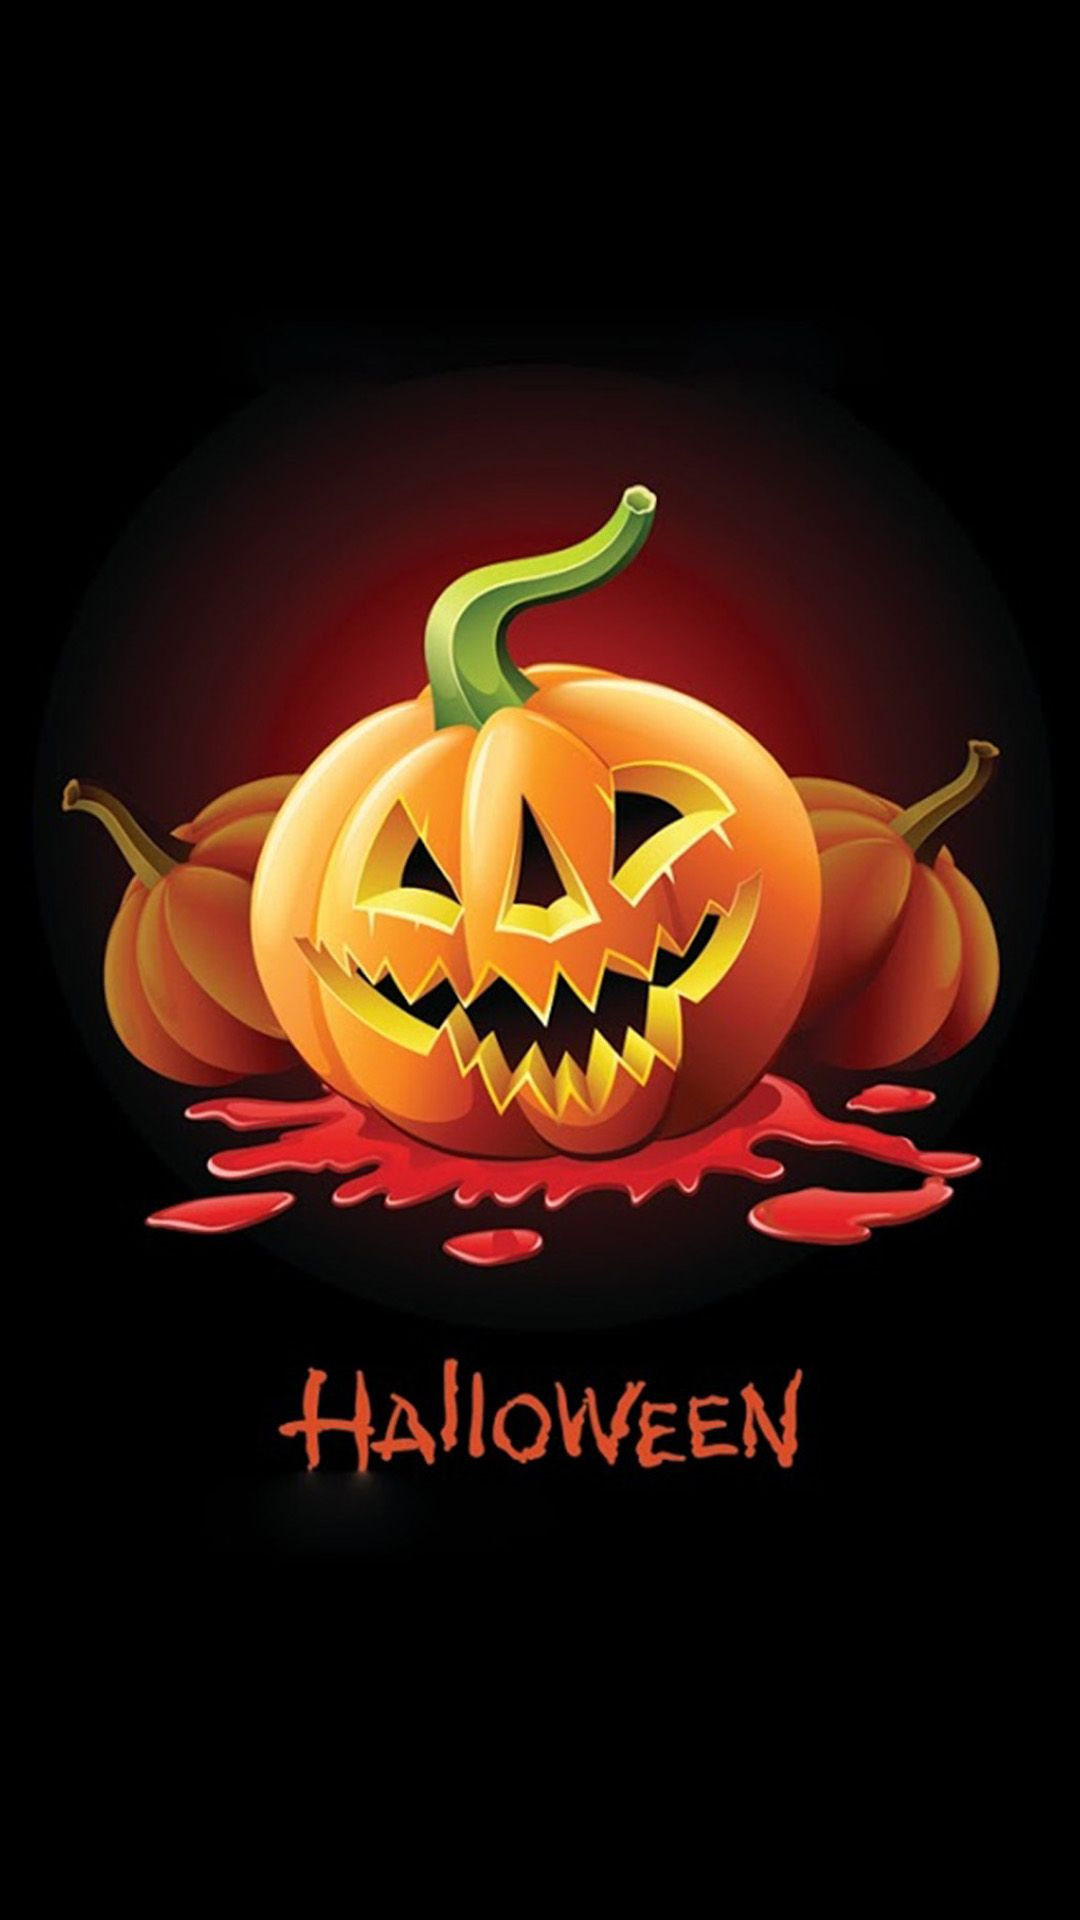 1080x1920 Halloween Pumpkin Carving Android Wallpaper free download